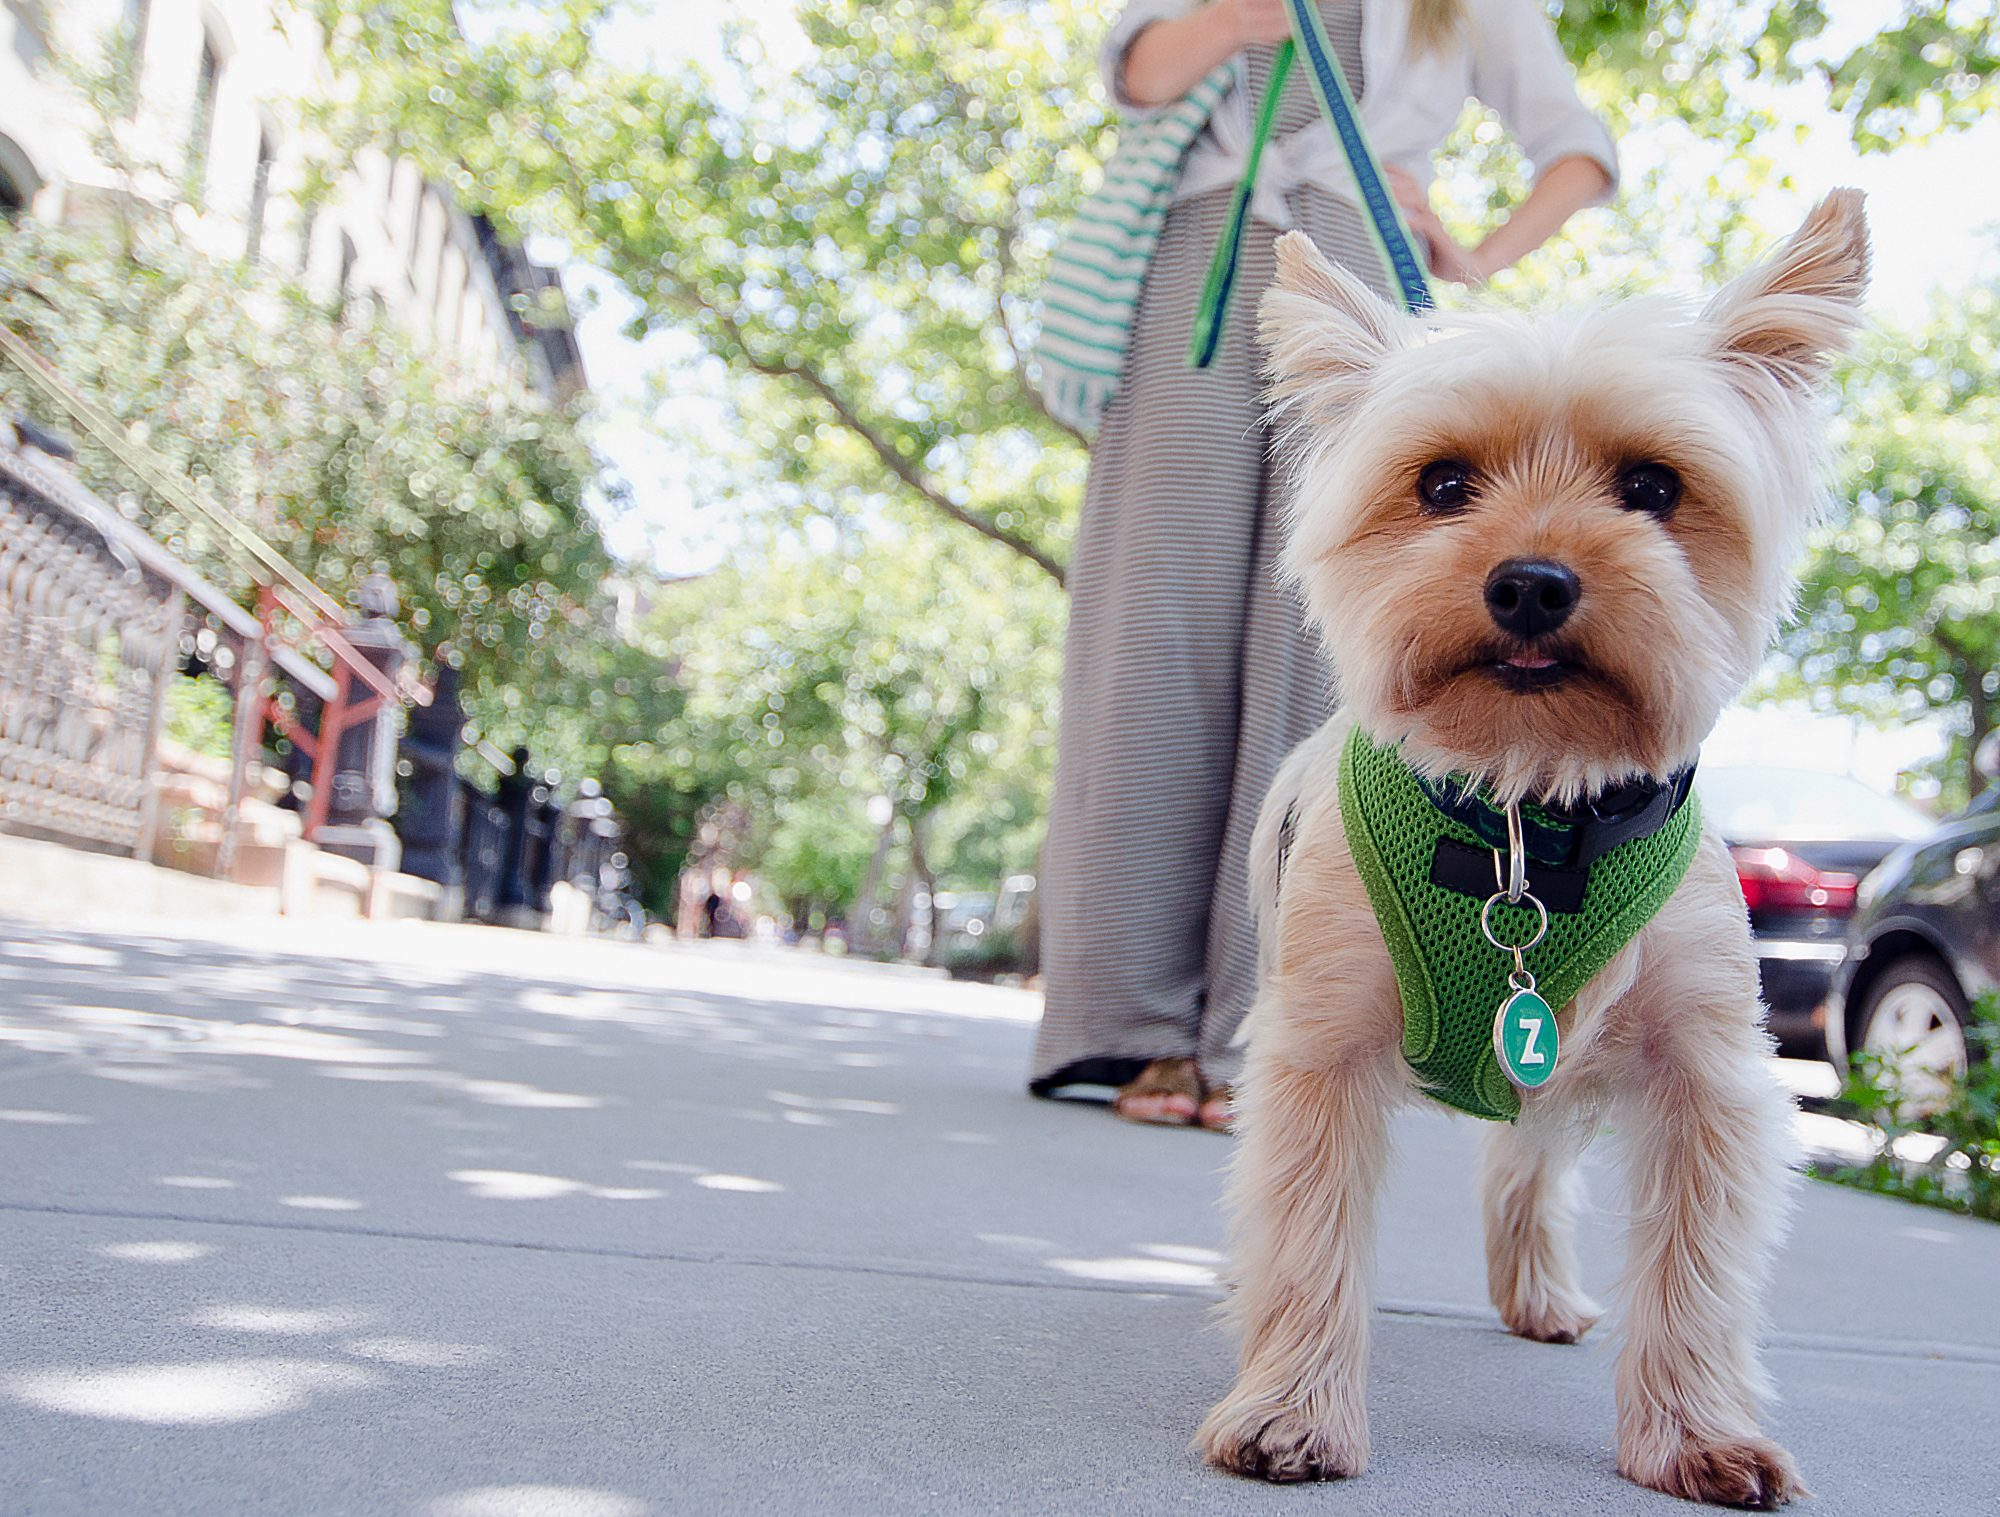 yorkie with a cute haircut walking with her owner on an urban street